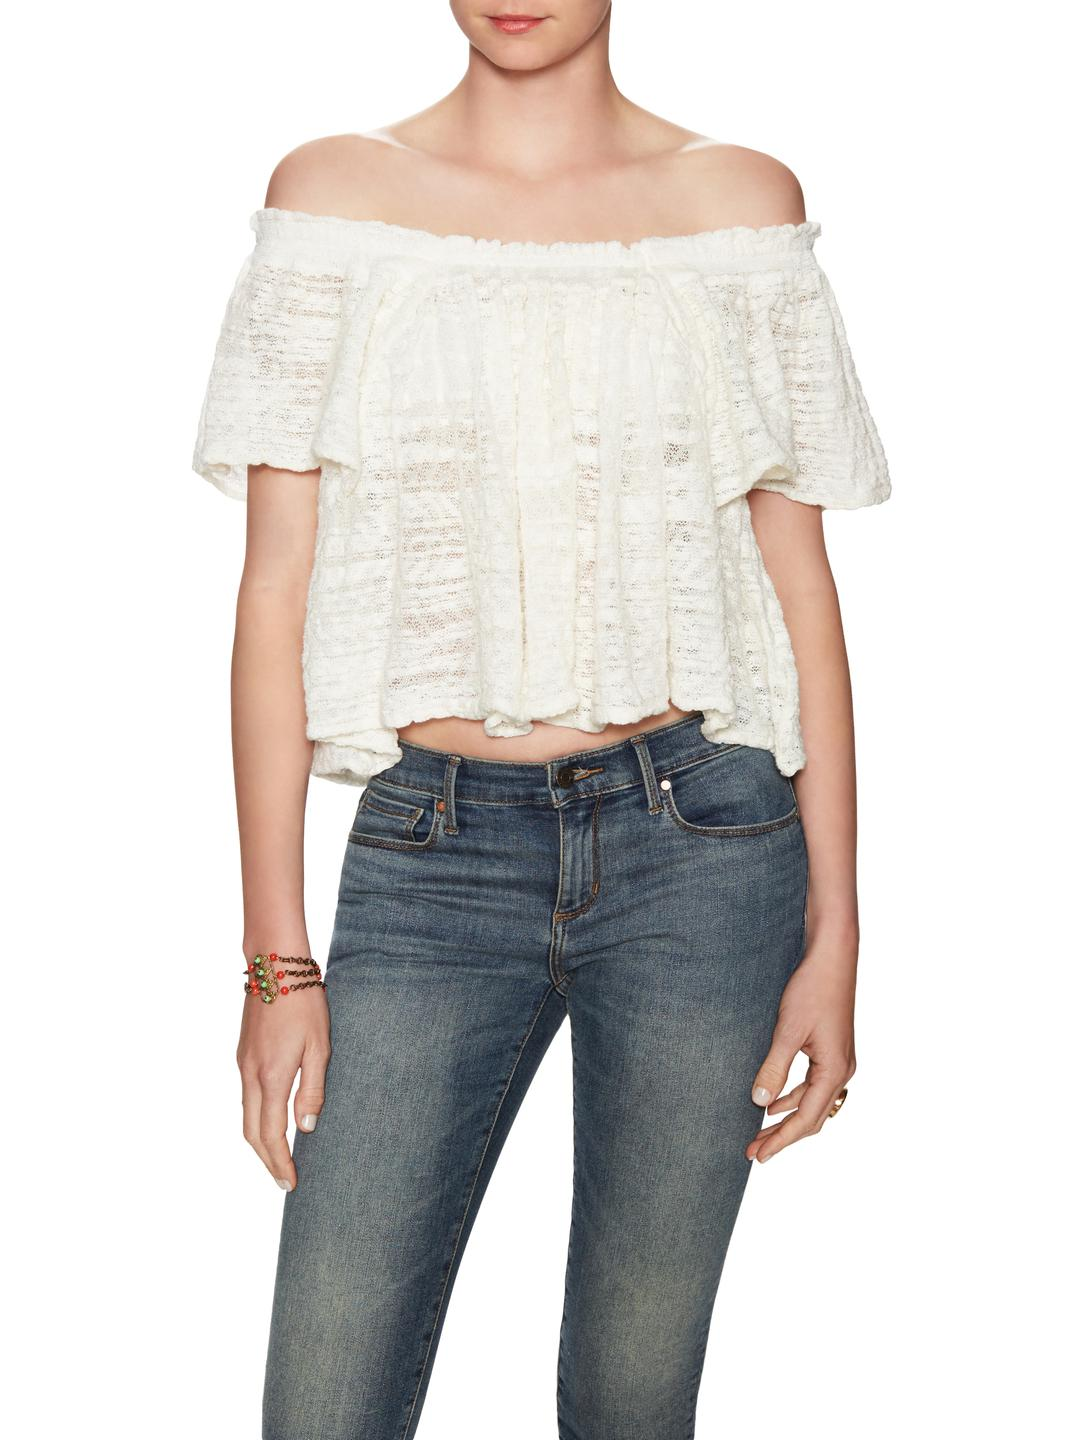 6bc7620b0fc Lyst - Free People Thrills And Frills Gathered Top in White